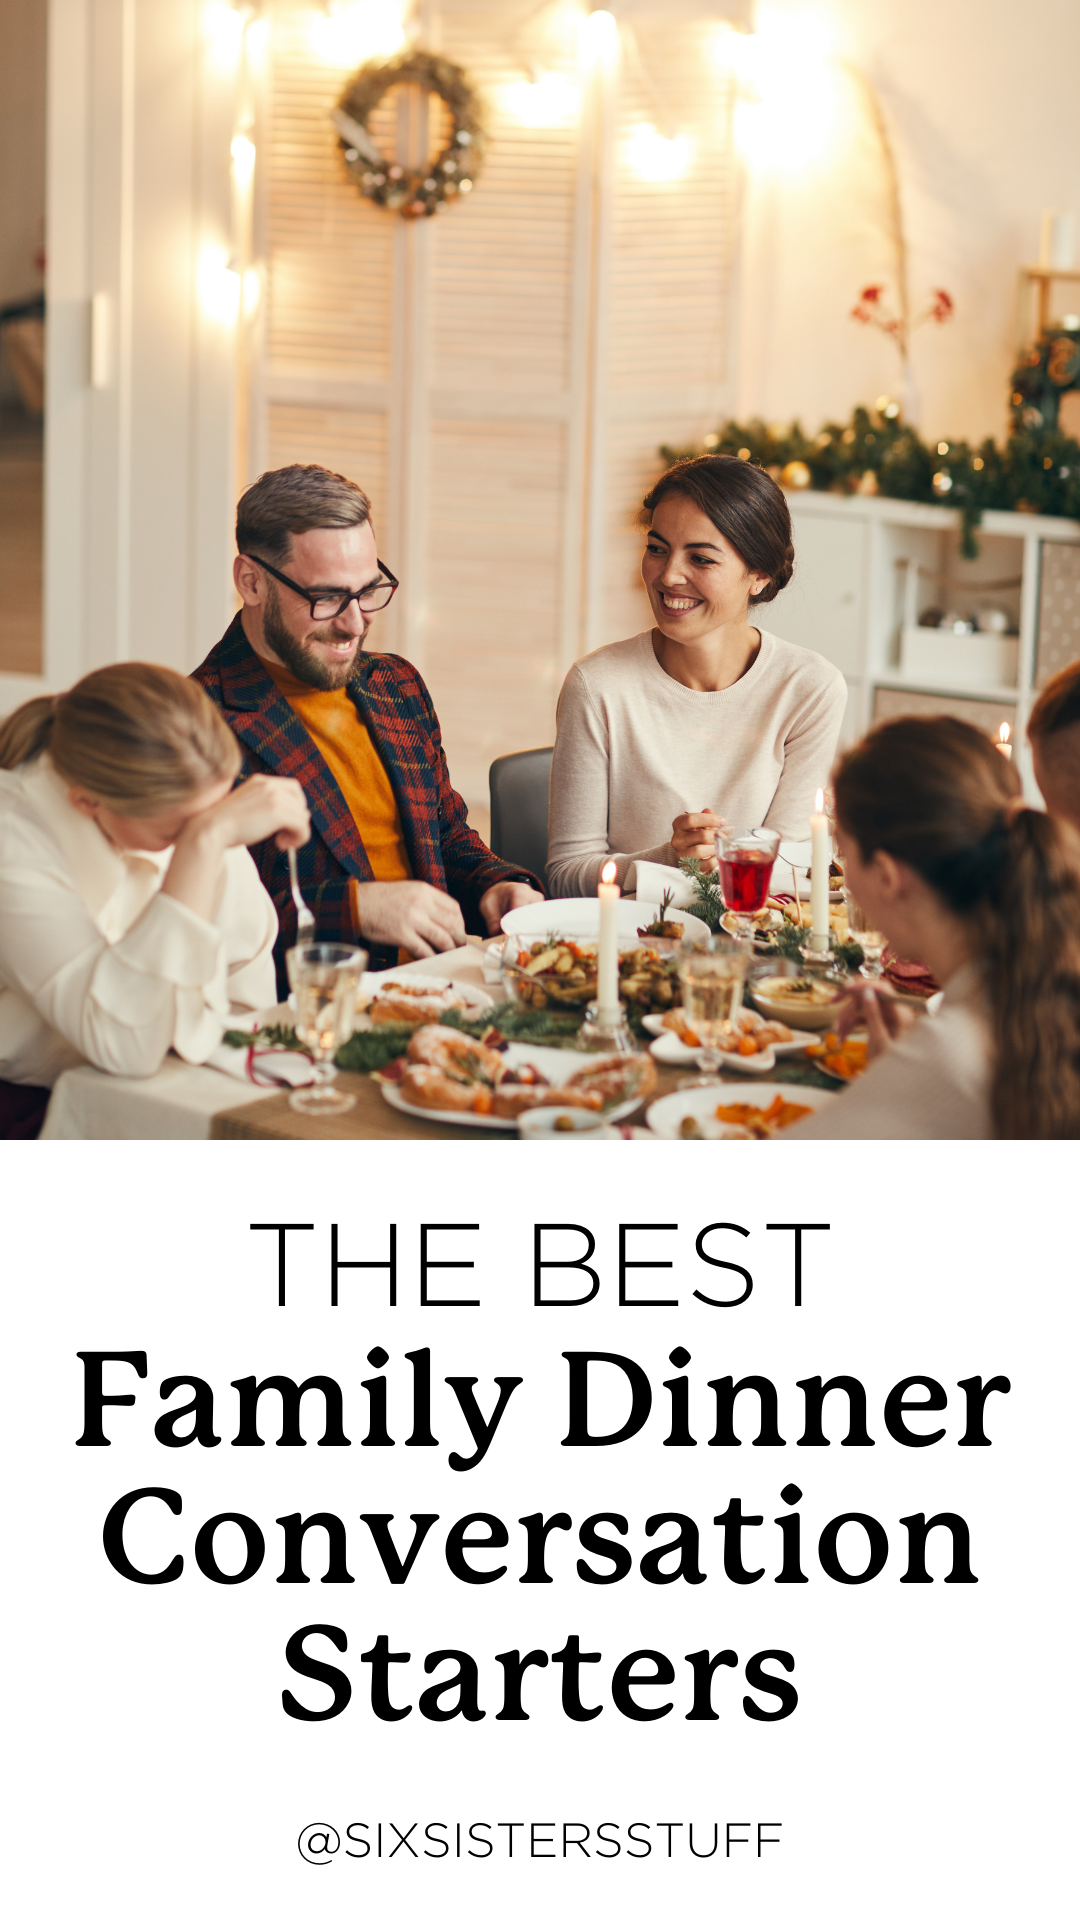 50 Family Dinner Conversation Starters (Questions to ask your kids)